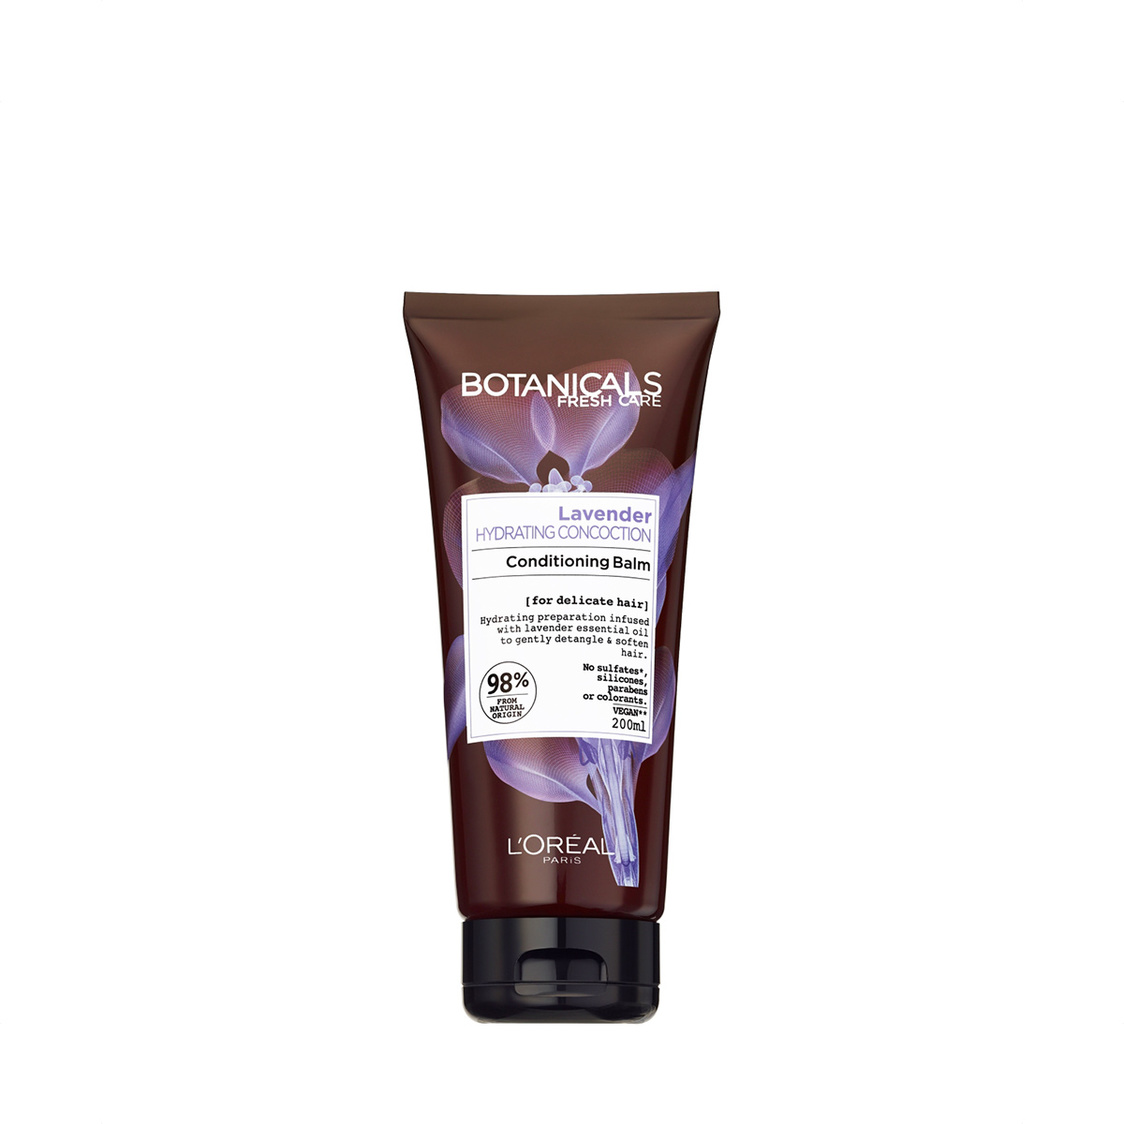 Botanicals Lavender Soothing Conditioner 200ml